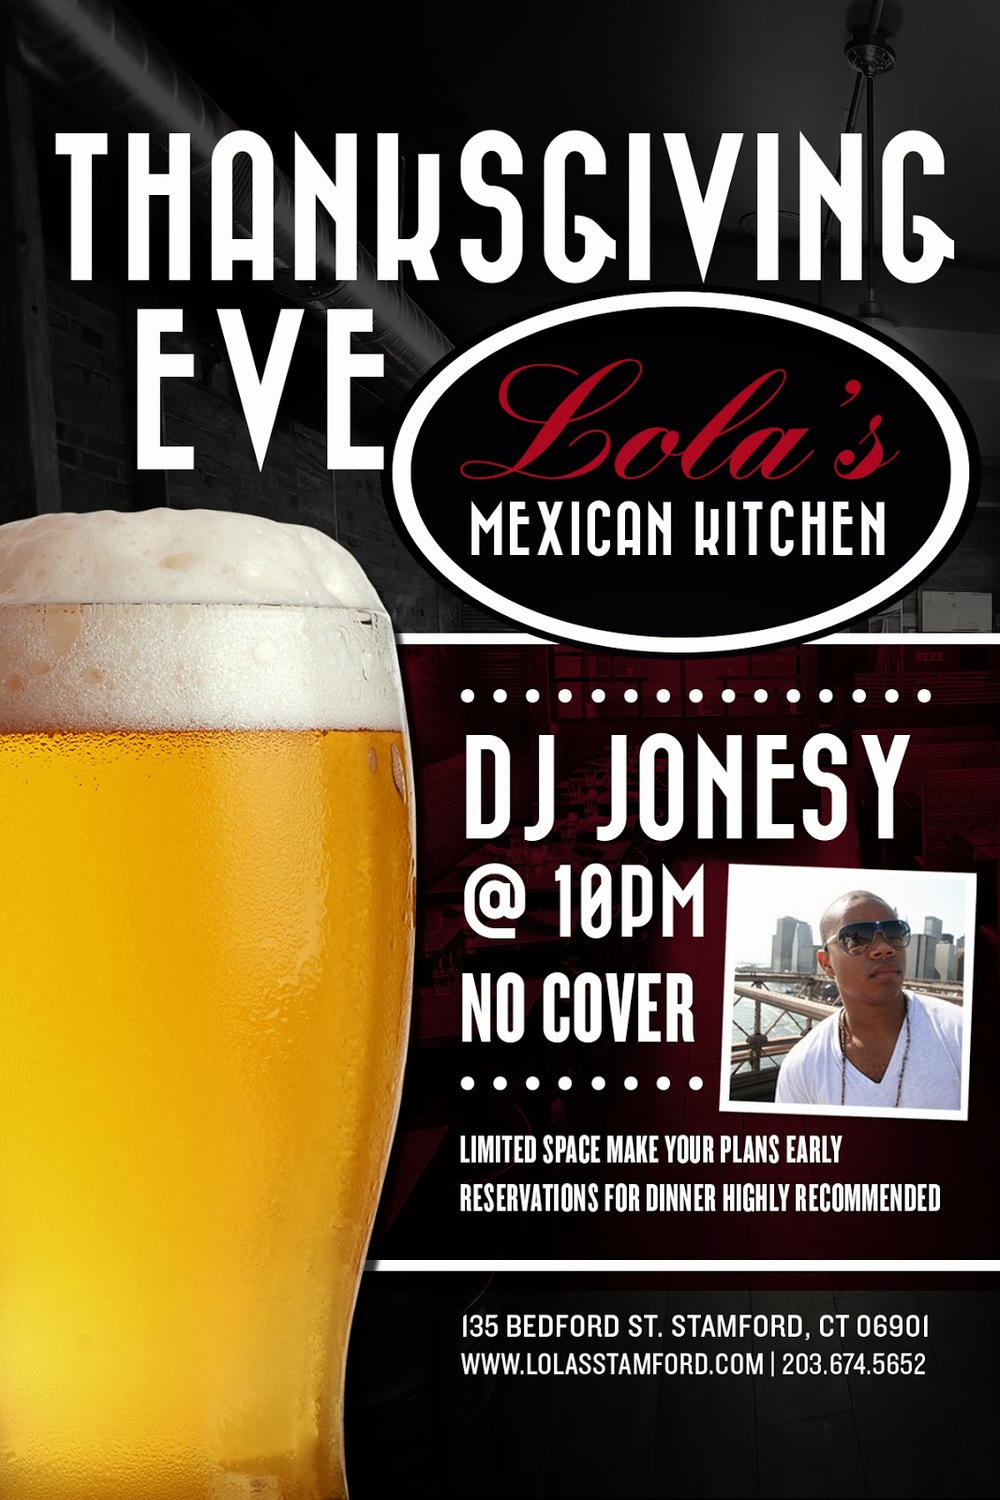 THANKSGIVING EVE PARTY   FEAT.   JONESY    @  LOLA'S MEXICAN KITCHEN  135 BEDFORD ST  STAMFORD, CT  10 PM